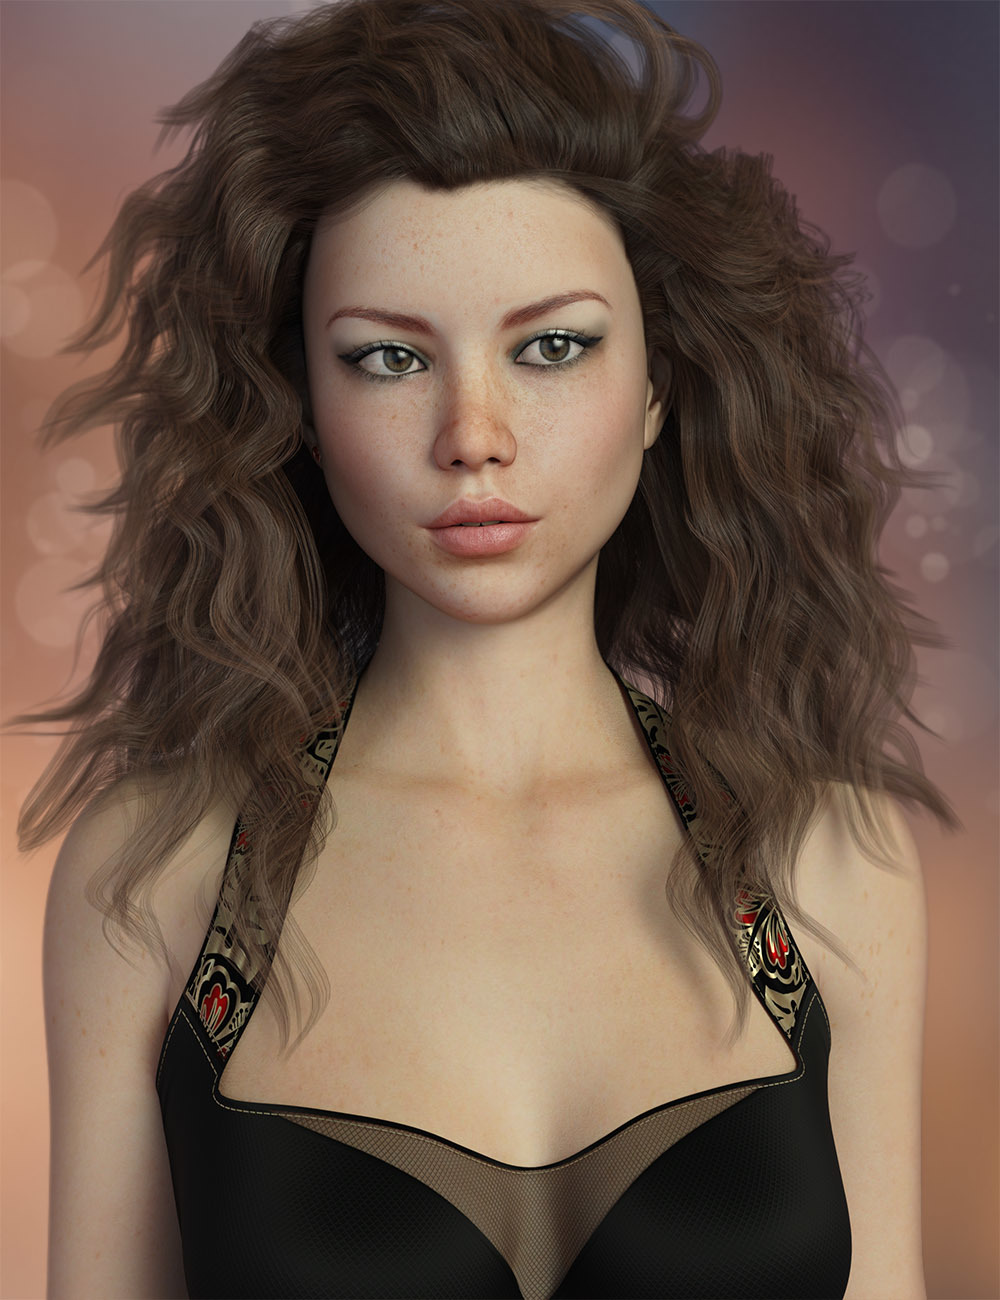 Jilleen for Genesis 3 Females